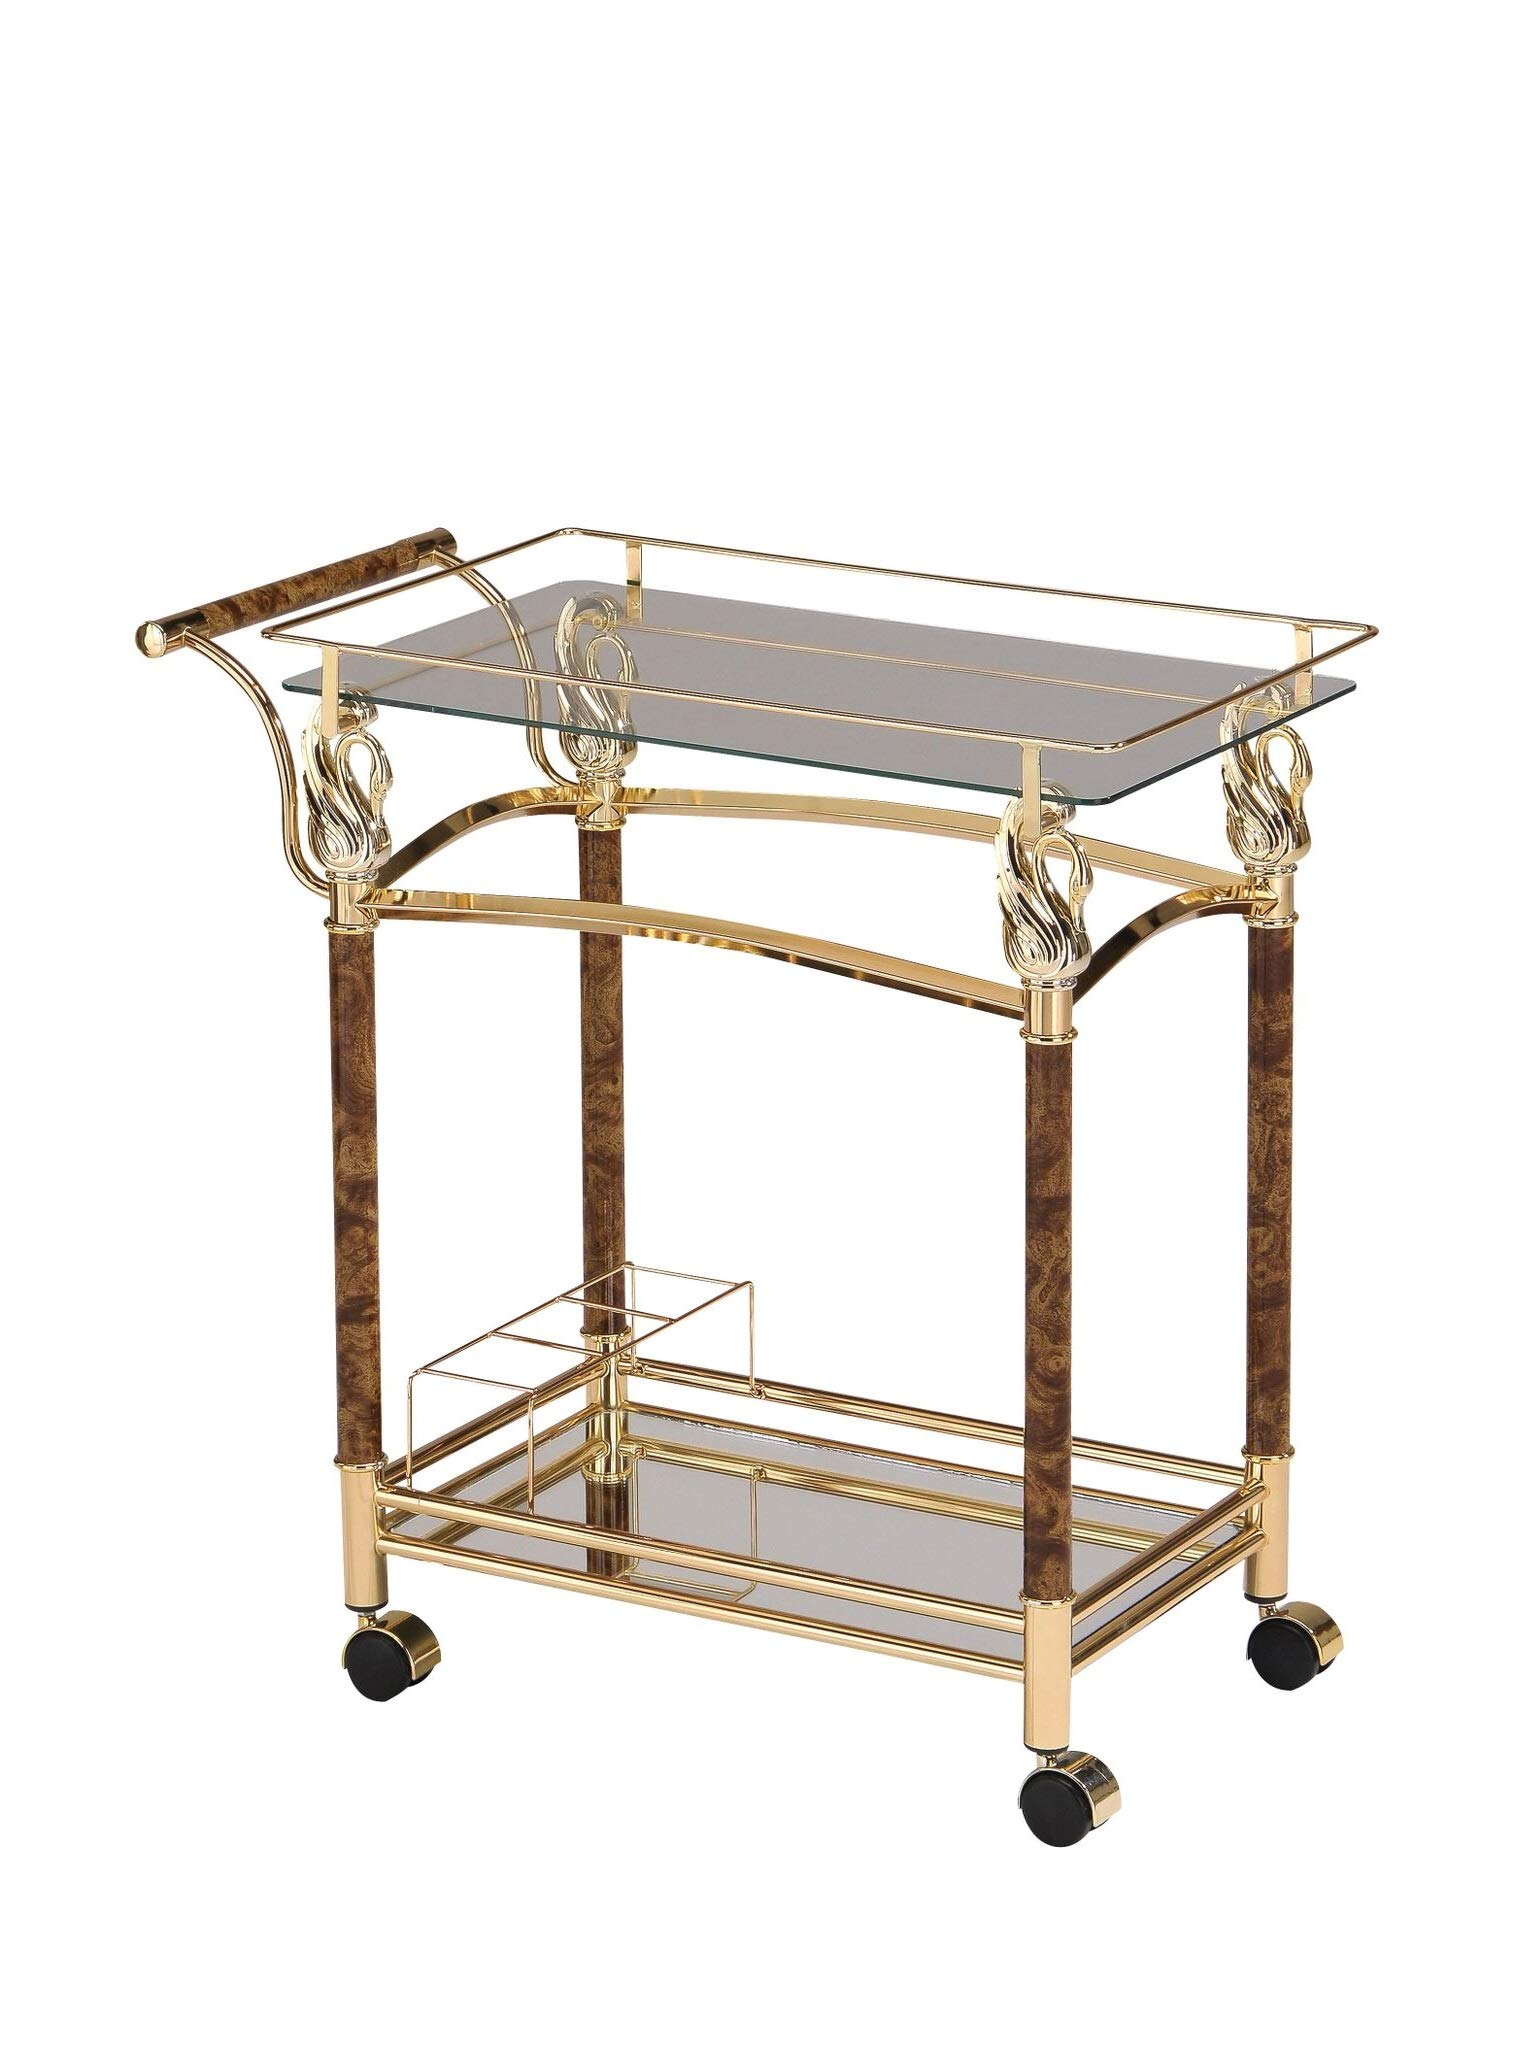 Major-Q 31'' H Modern Style 5mm Clear Tempered Glass Top Gold Plated Metal Frame Kitchen Island Wine Serving Cart with Caster Wheels, 9098002